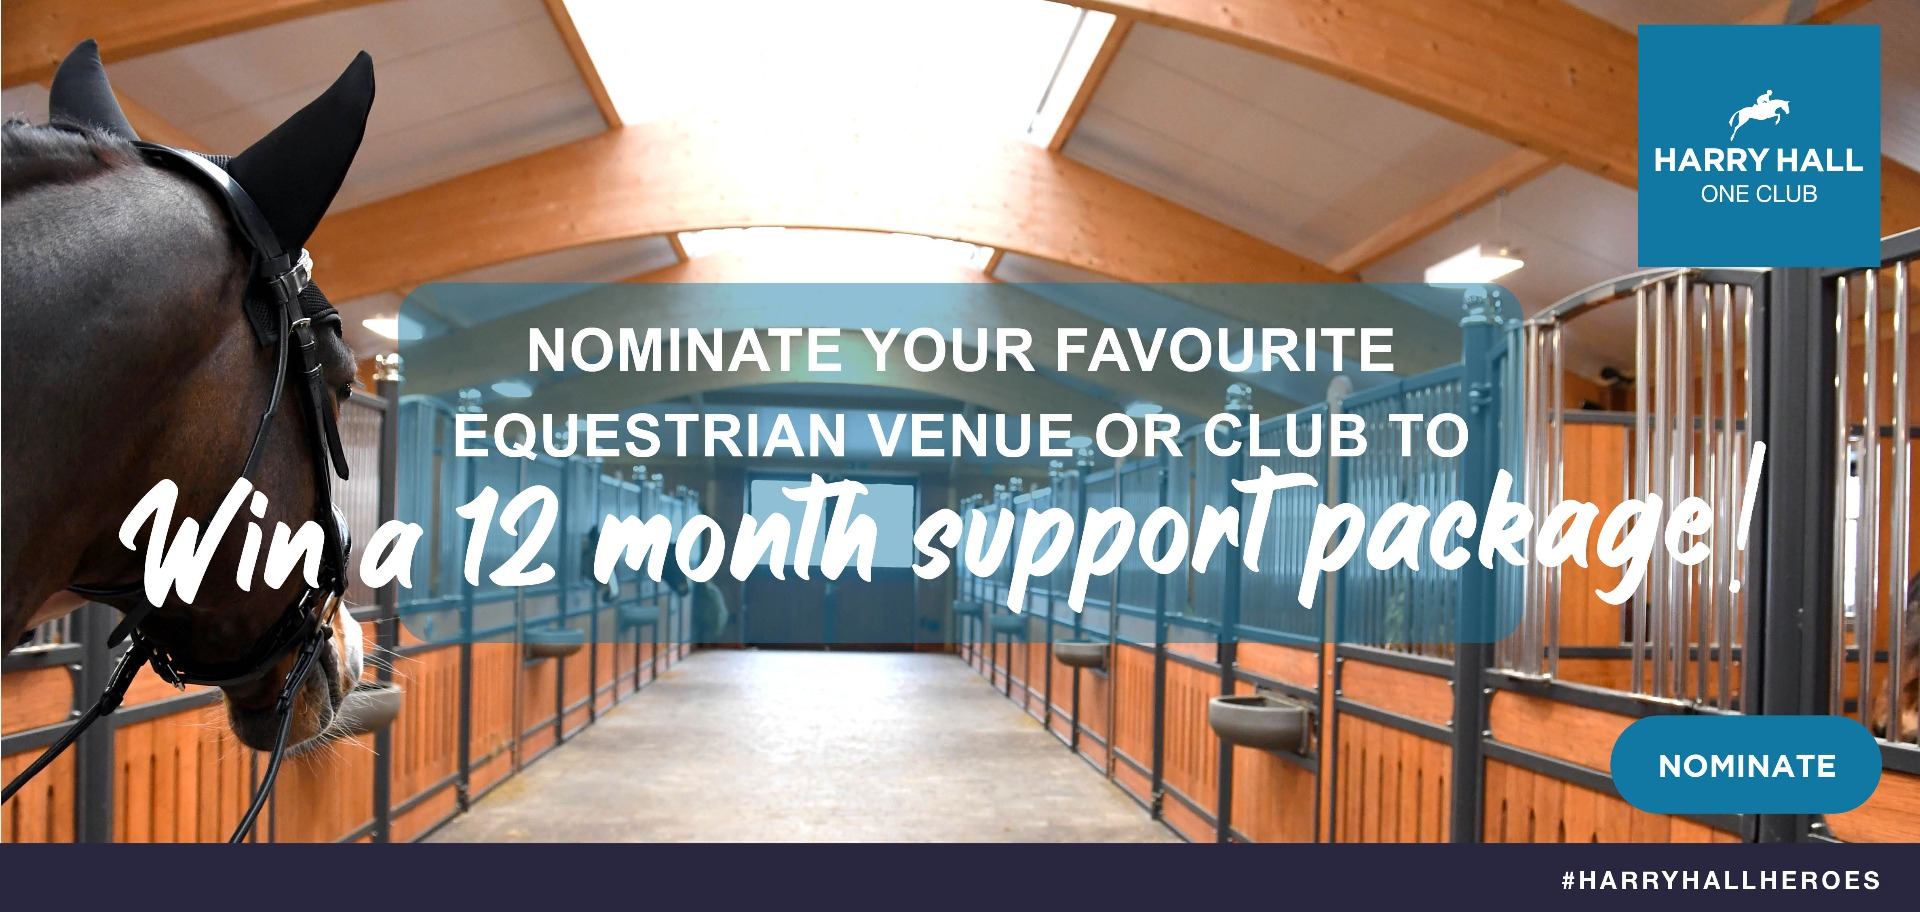 Nominate your favourite equestrian venue | Harry Hall